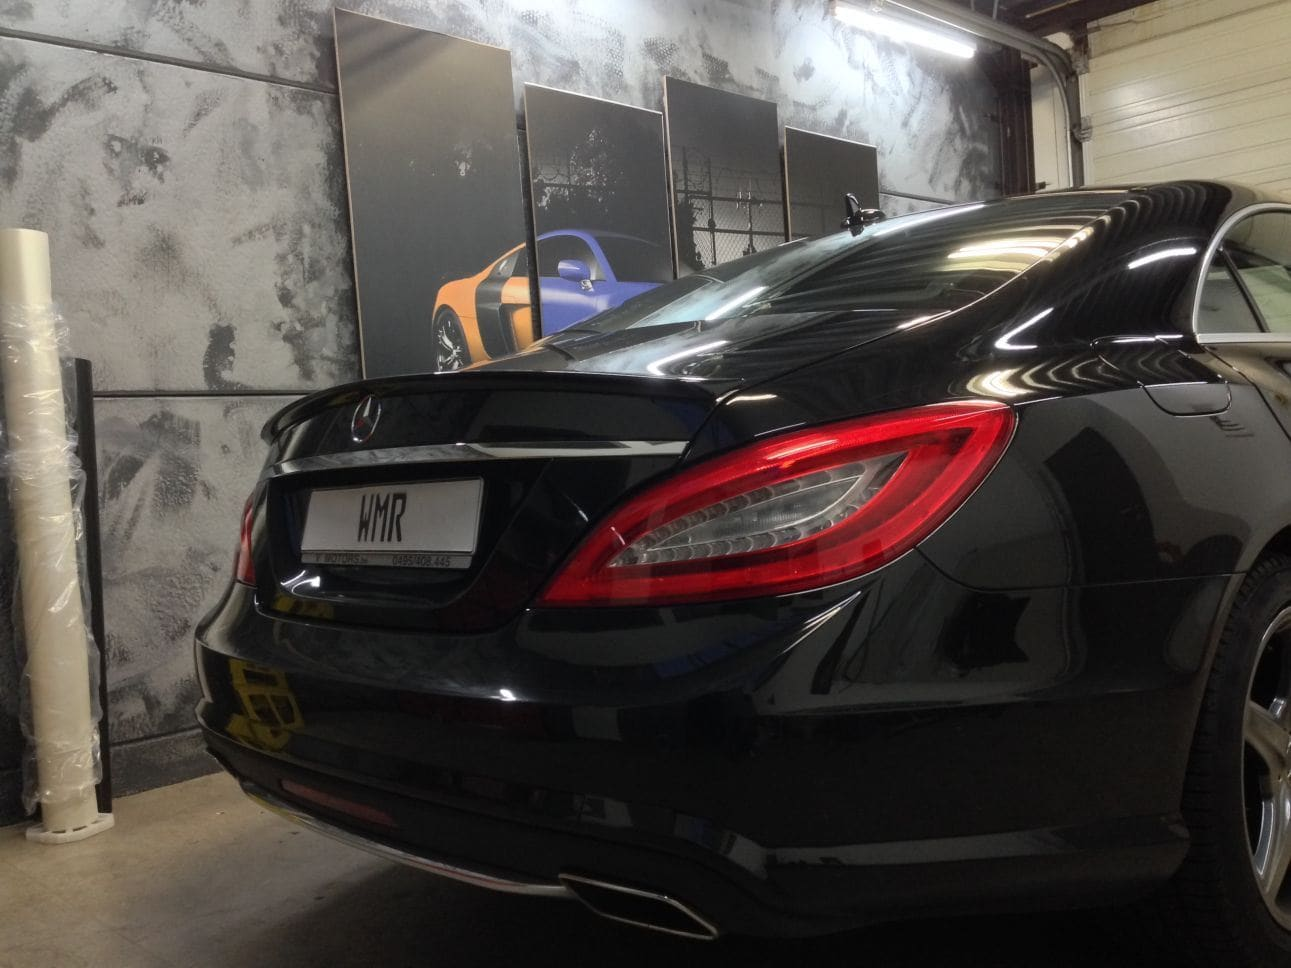 Mercedes CLS met White Satin Pearl Wrap, Carwrapping door Wrapmyride.nu Foto-nr:6174, ©2021